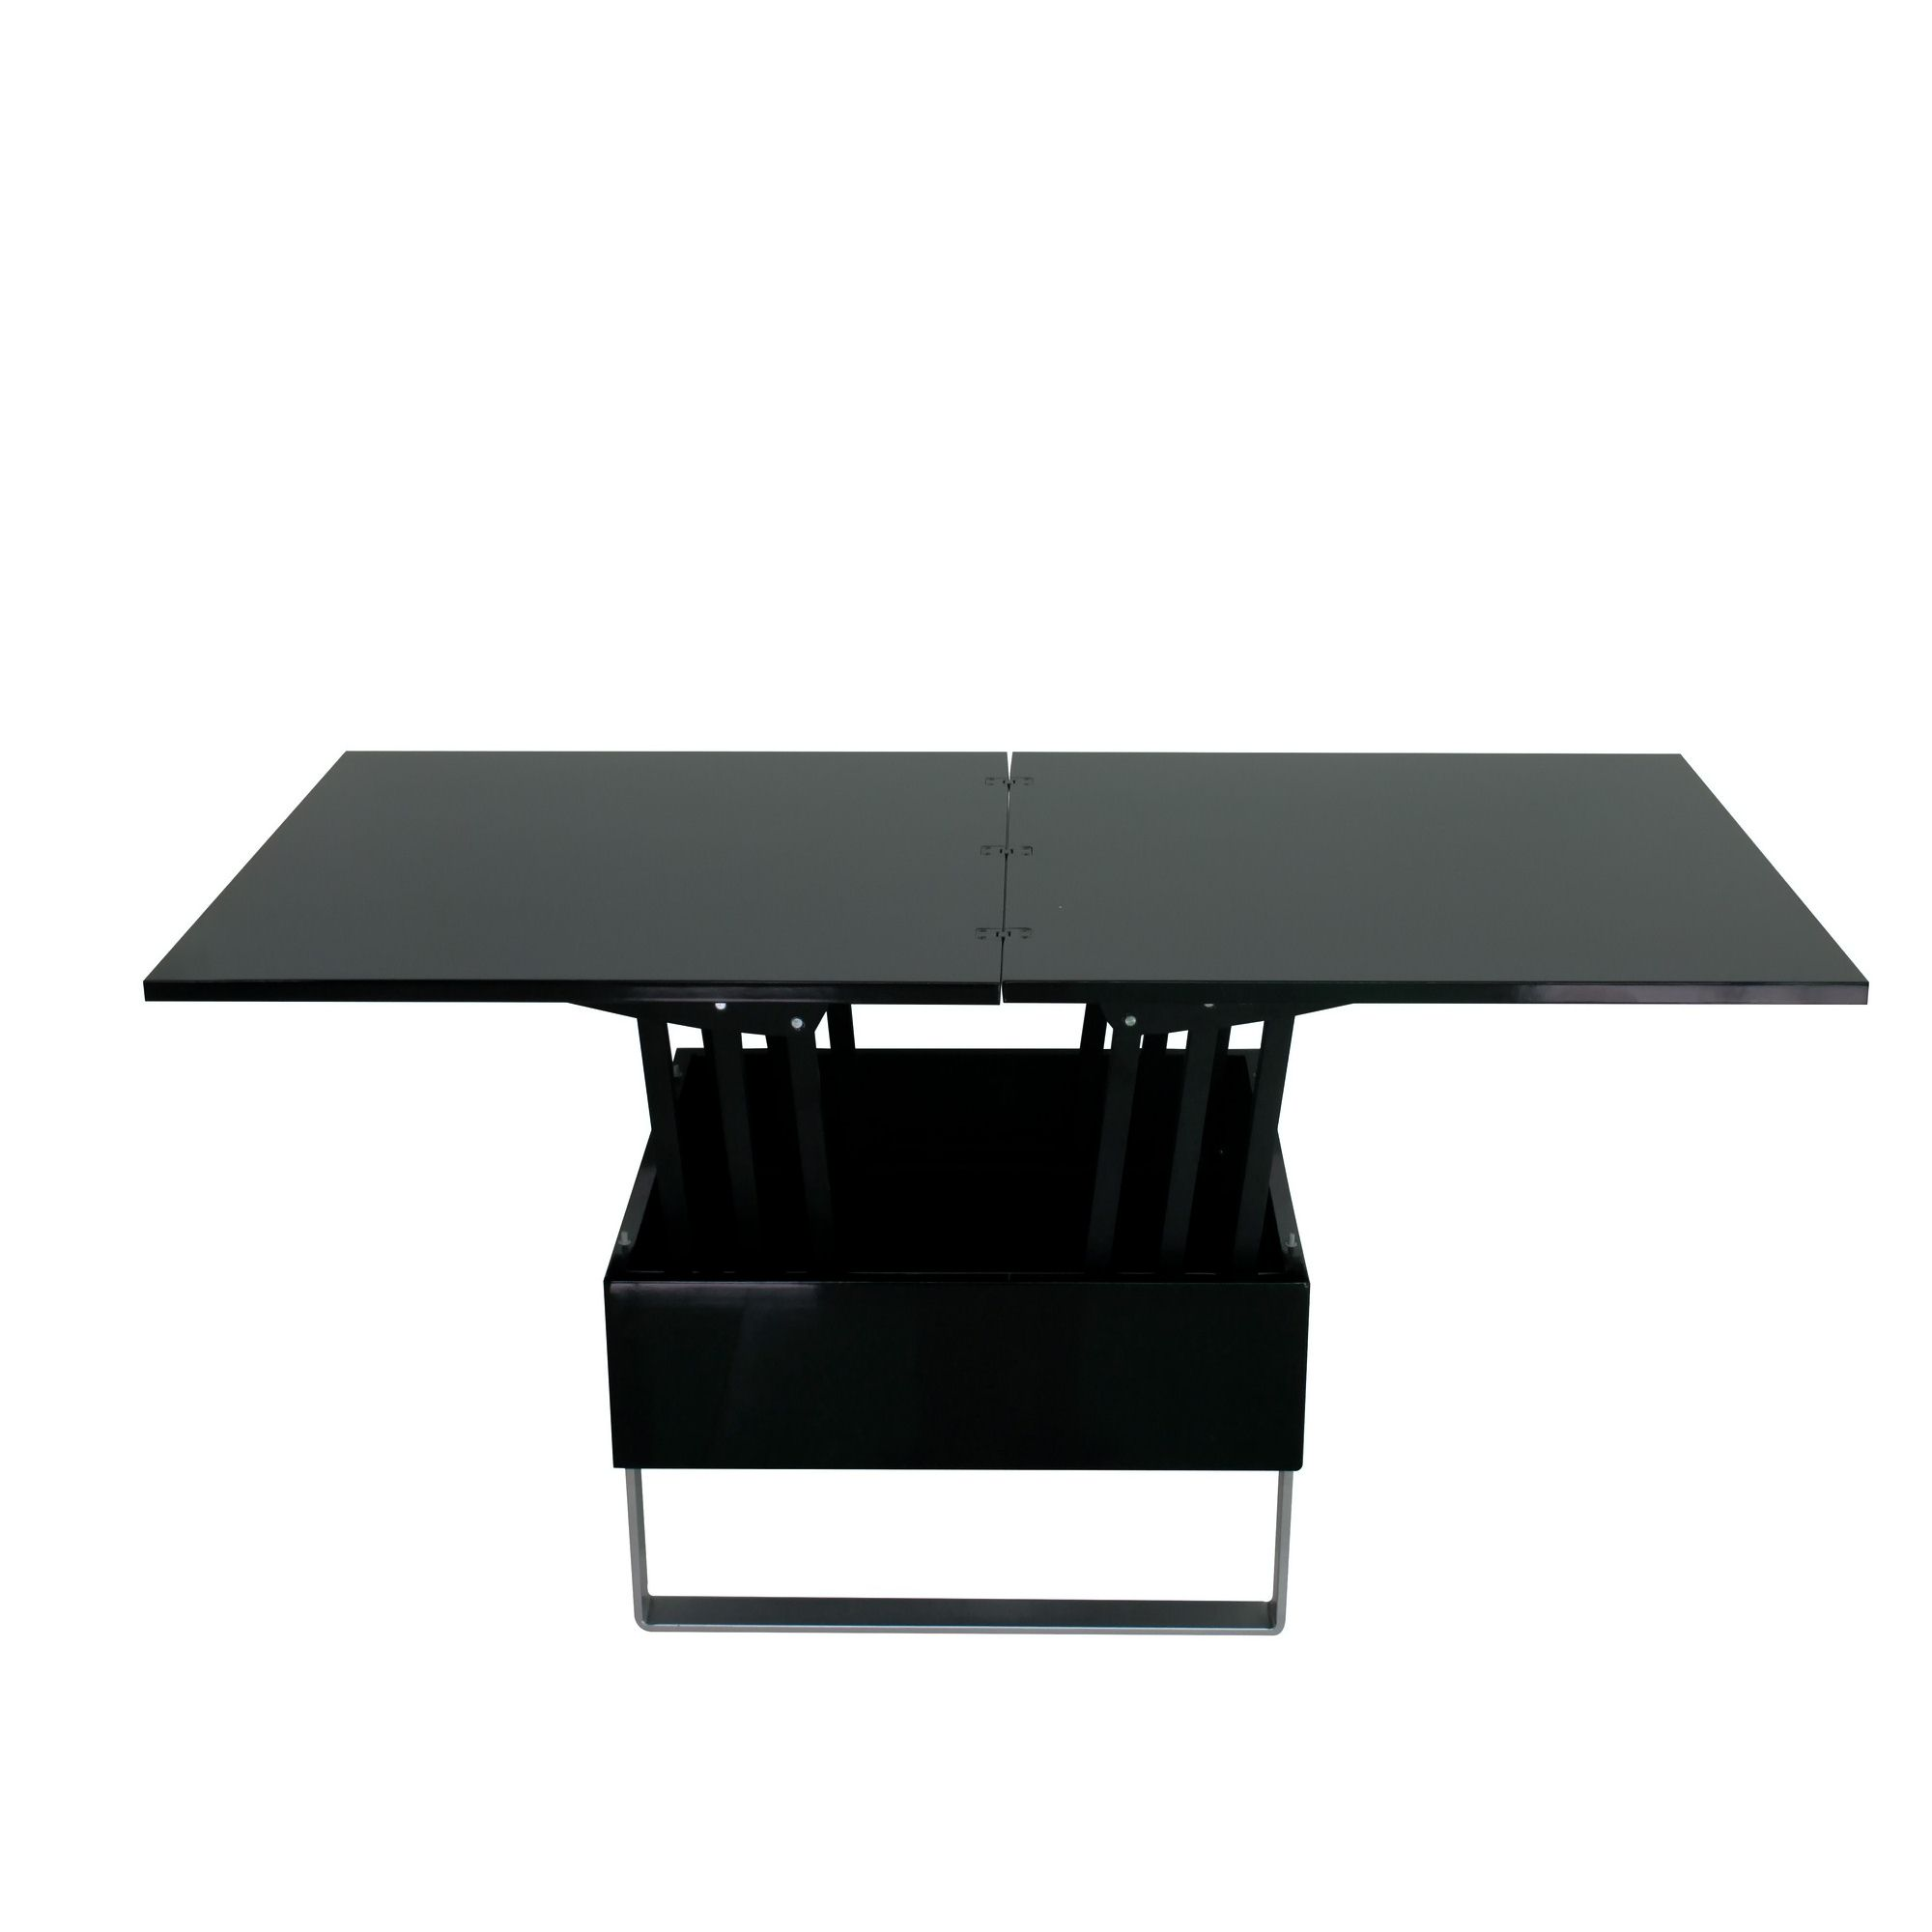 Deco in paris table basse relevable multifonction woods laque noir woods noir - Table basse multifonction ...